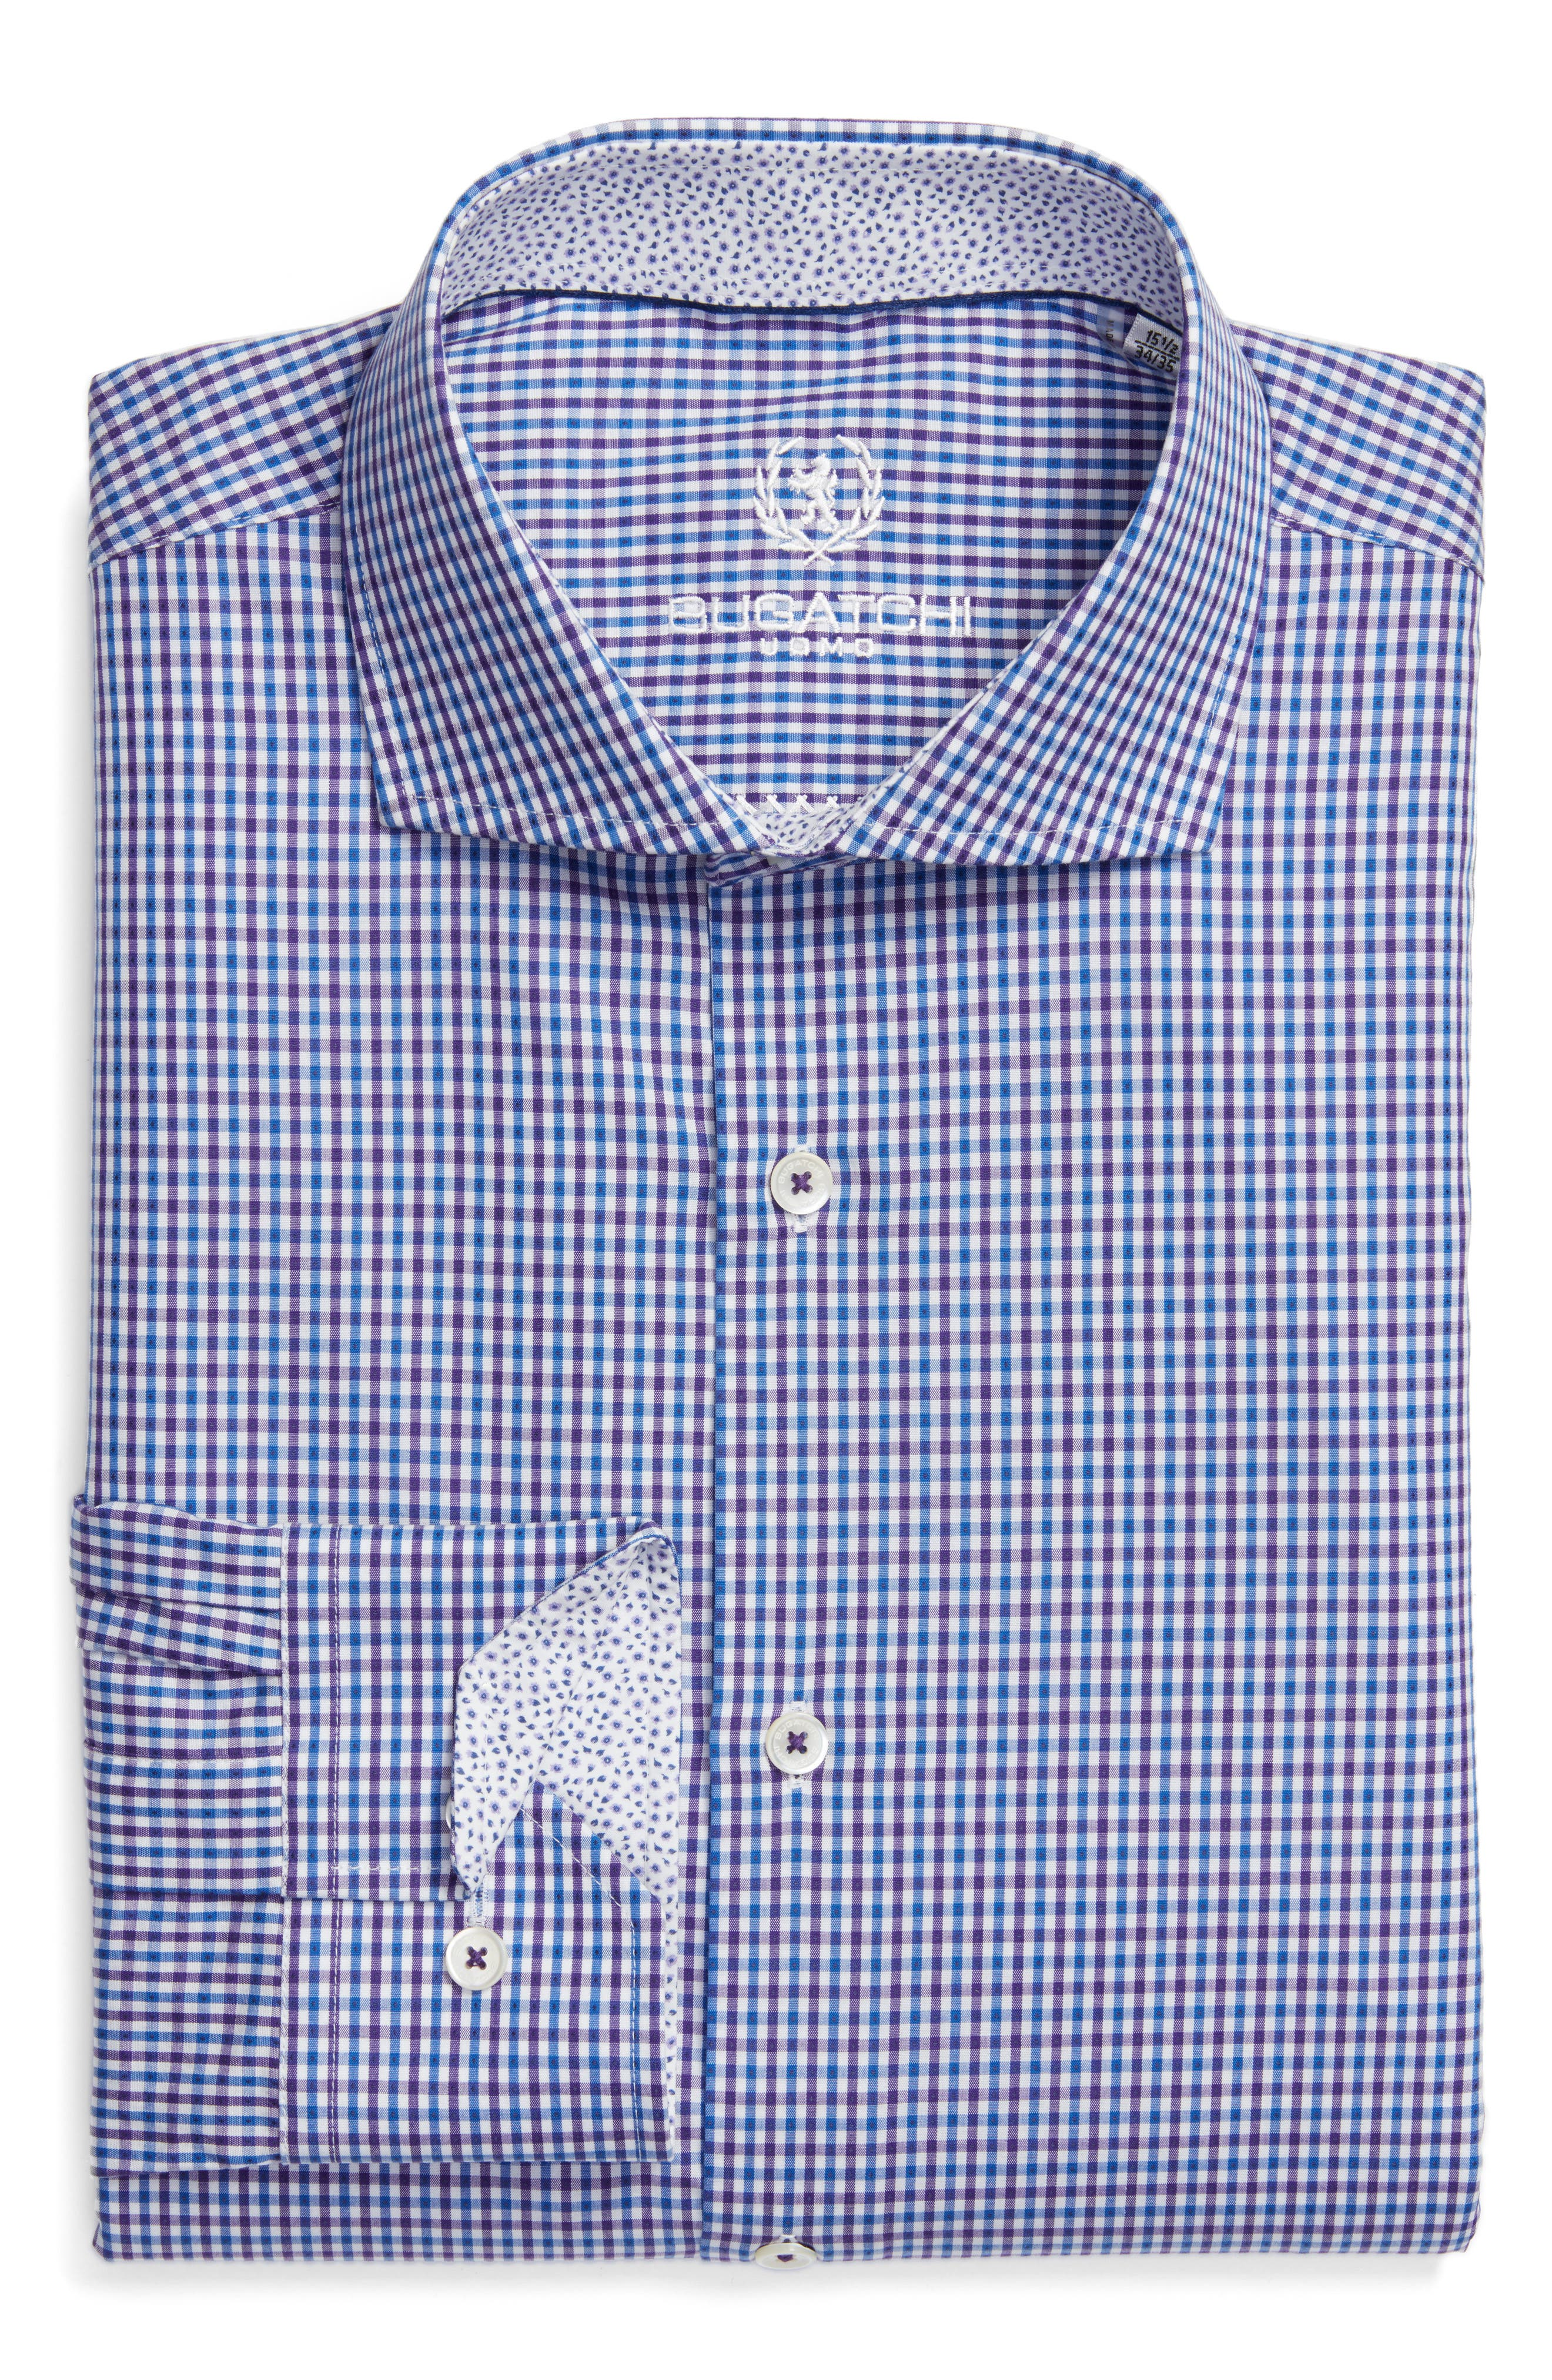 BUGATCHI Trim Fit Check Pattern Dress Shirt